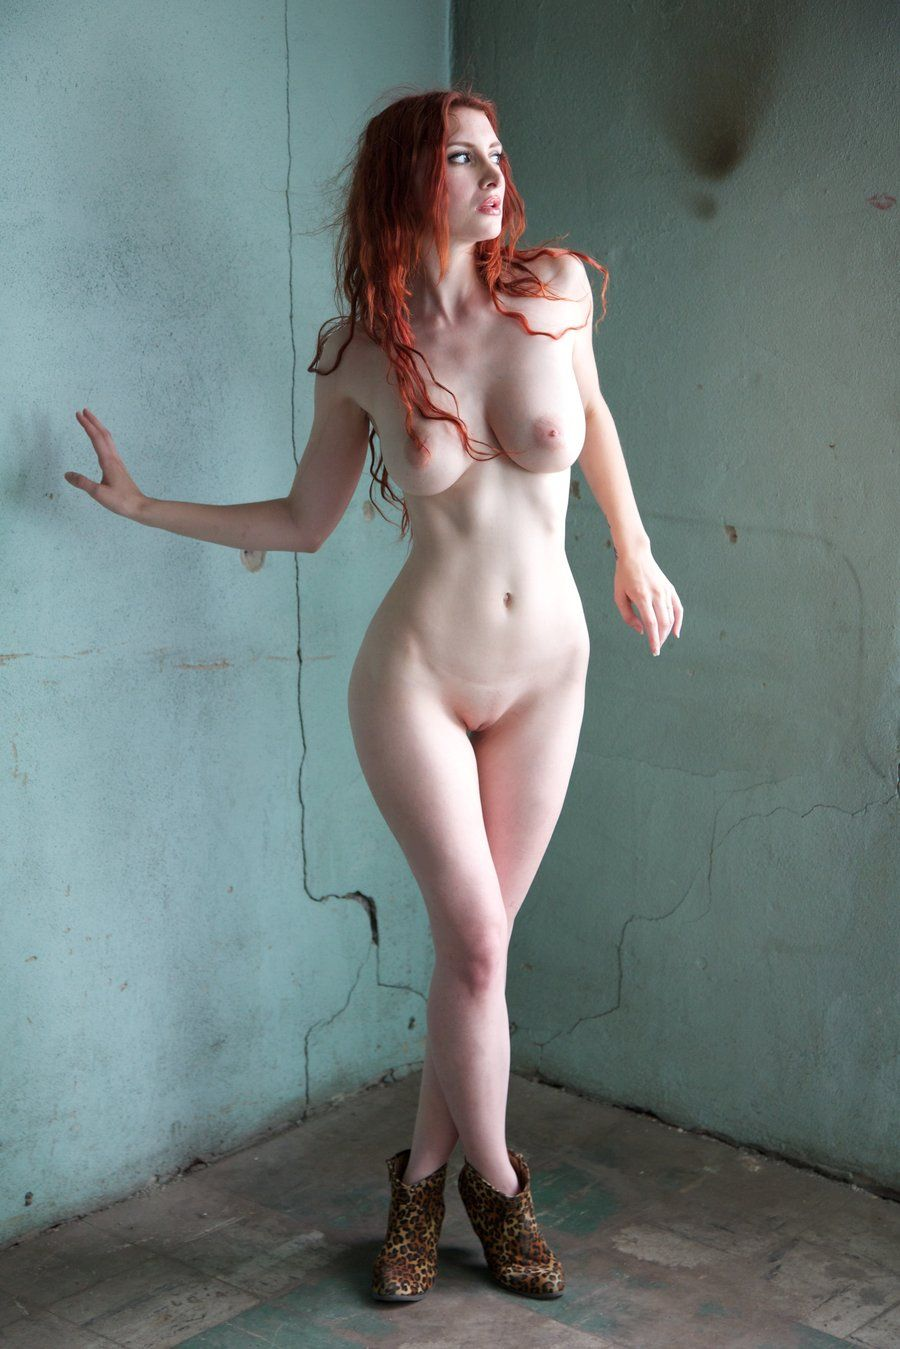 Nude redhead with /r/ChildbearingHips